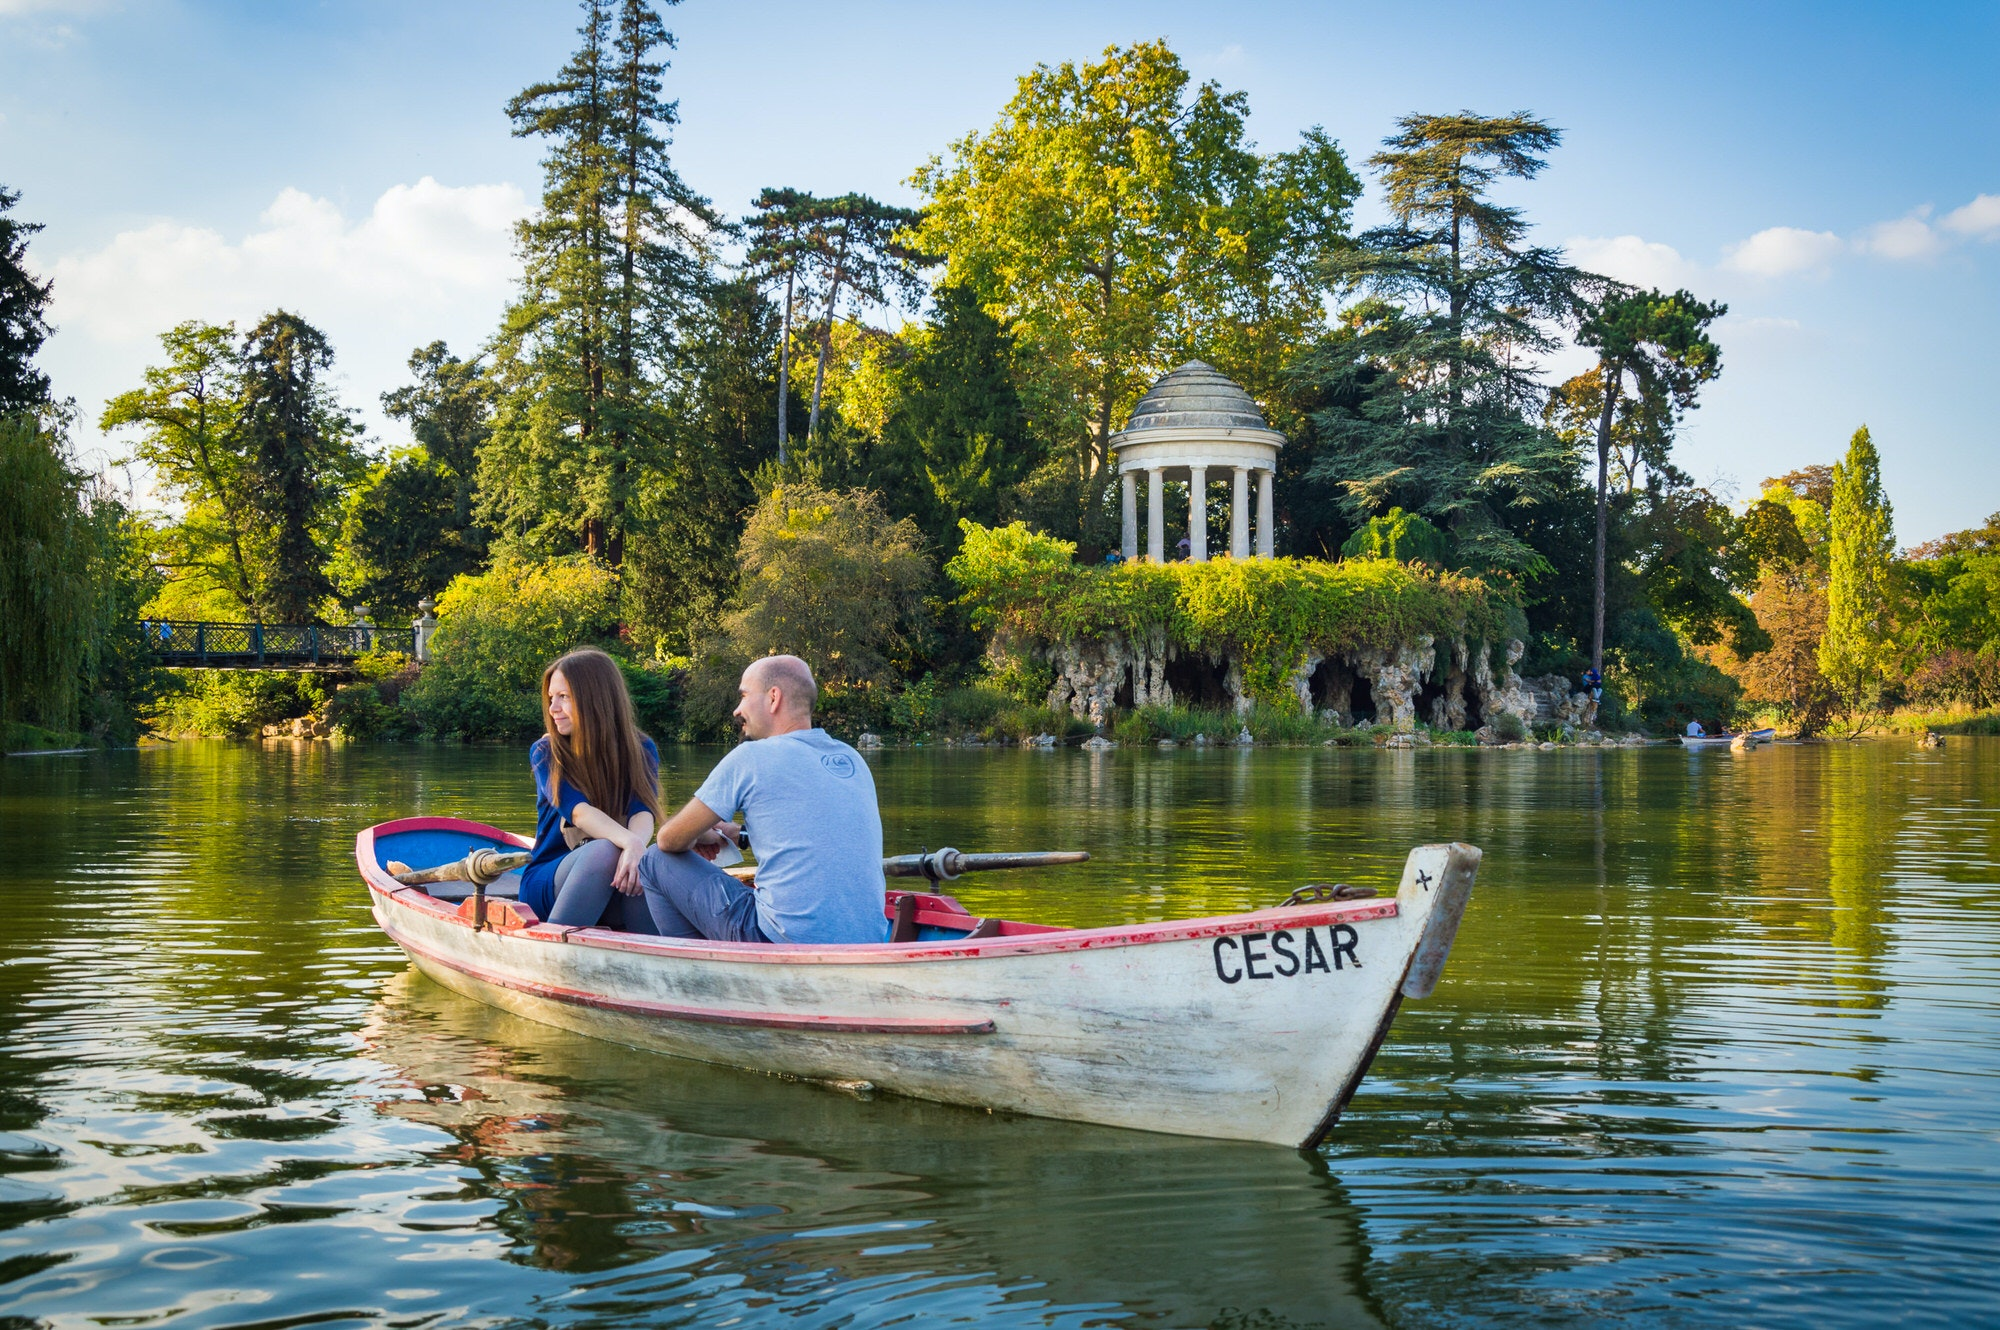 A couple in a row boat at Bois de Vincennes with the Temple of Love in the background